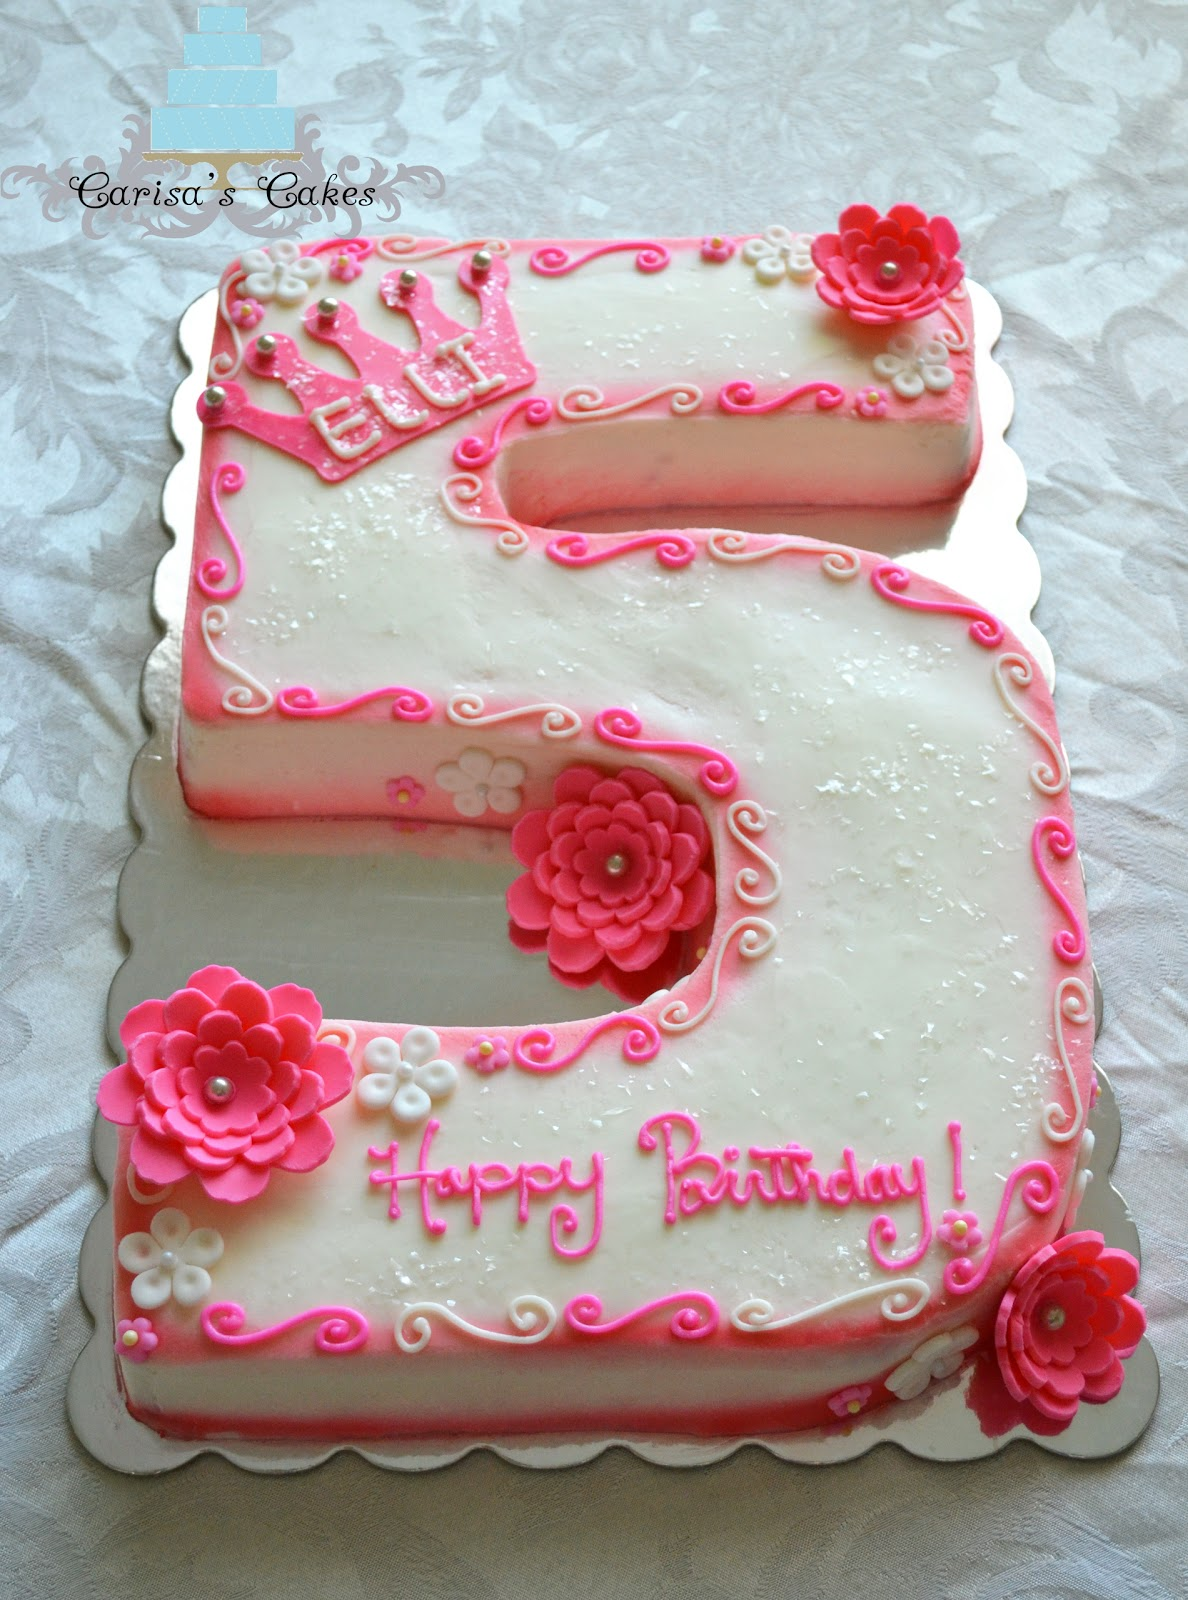 Cake Images In Birthday : Carisa s Cakes: 5 Shaped Birthday Cake